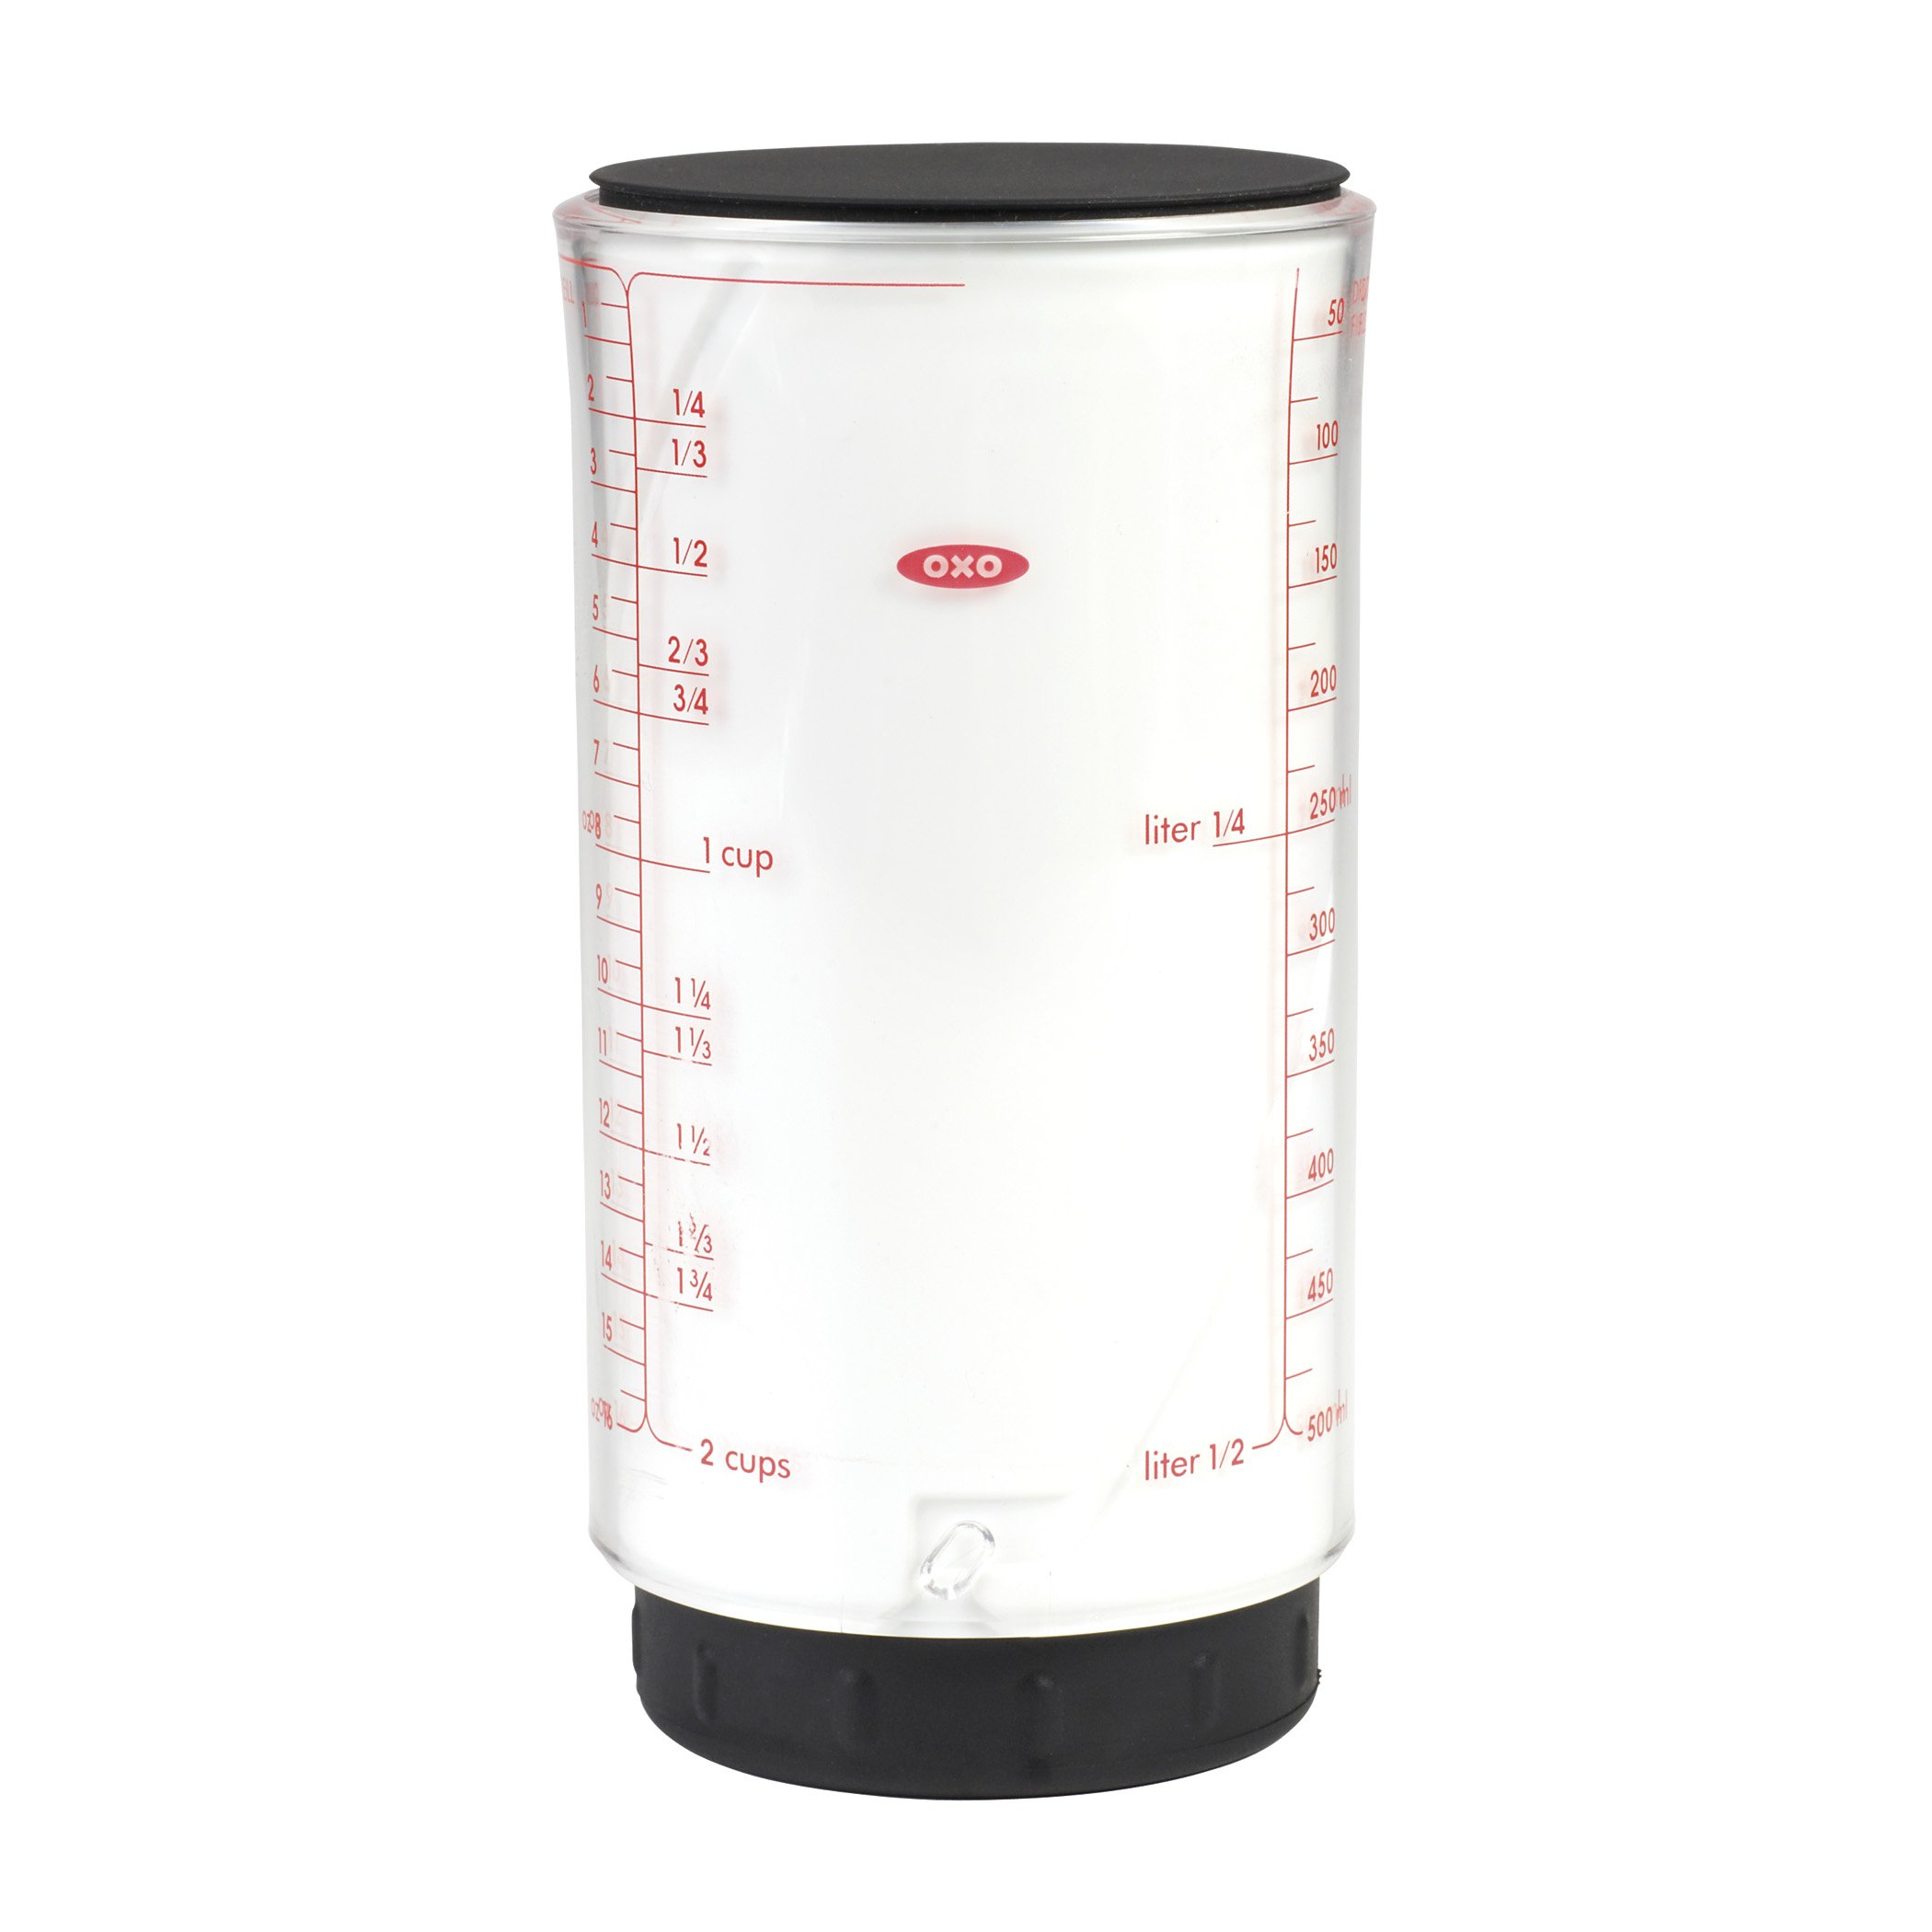 OXO Good Grips 2 Cup Adjustable Measuring Cup